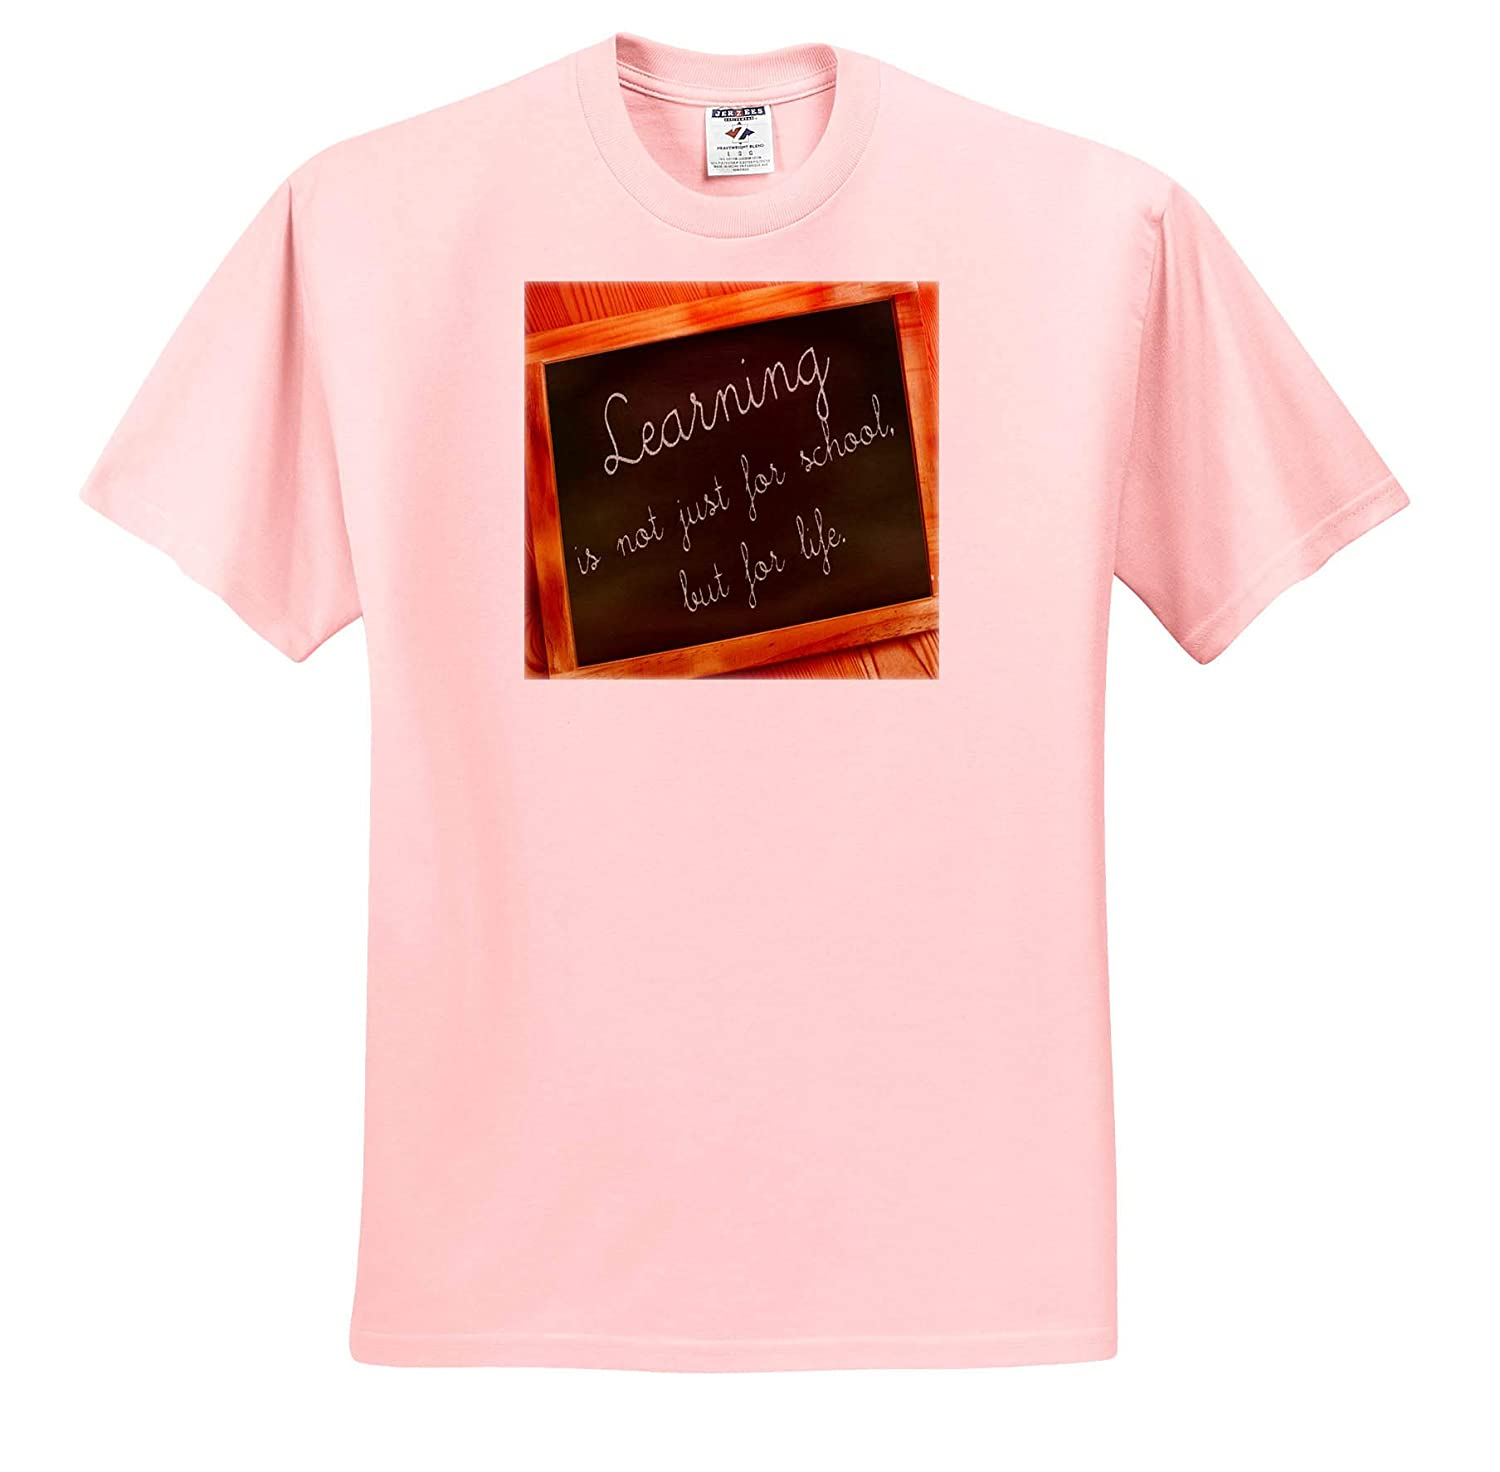 ts/_316566 Adult T-Shirt XL Image of Learning Not Just for School But Life On Blackboard 3dRose Lens Art by Florene